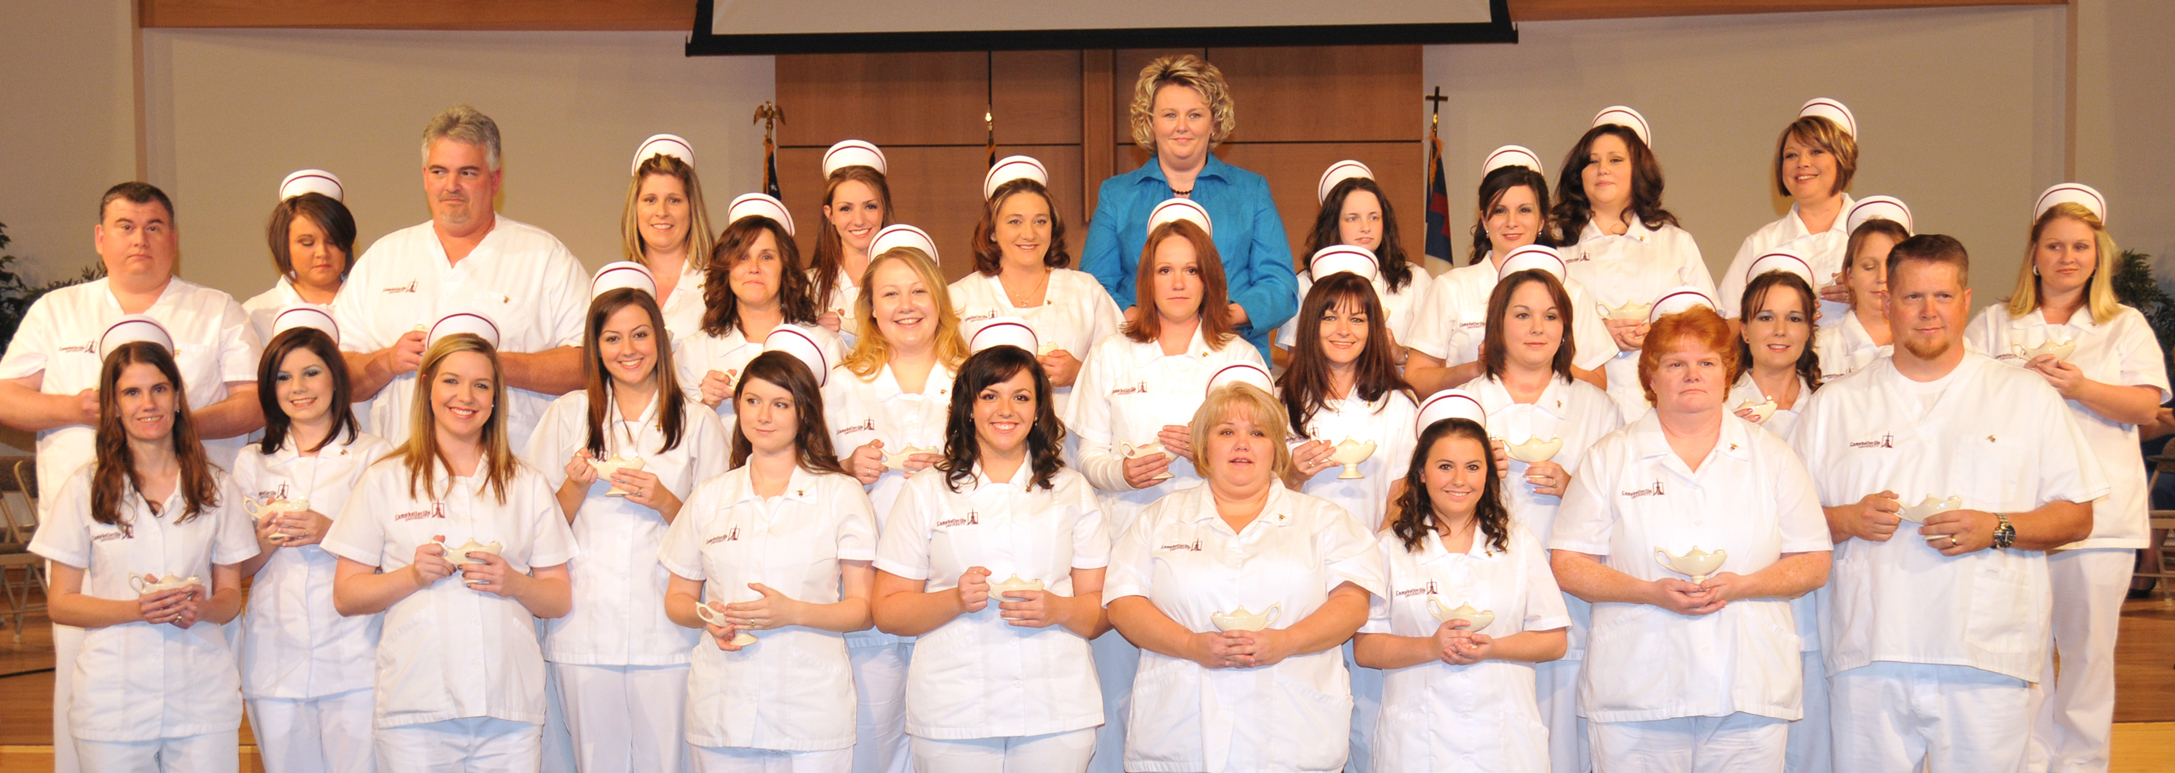 Nursing pinning dec 2012r